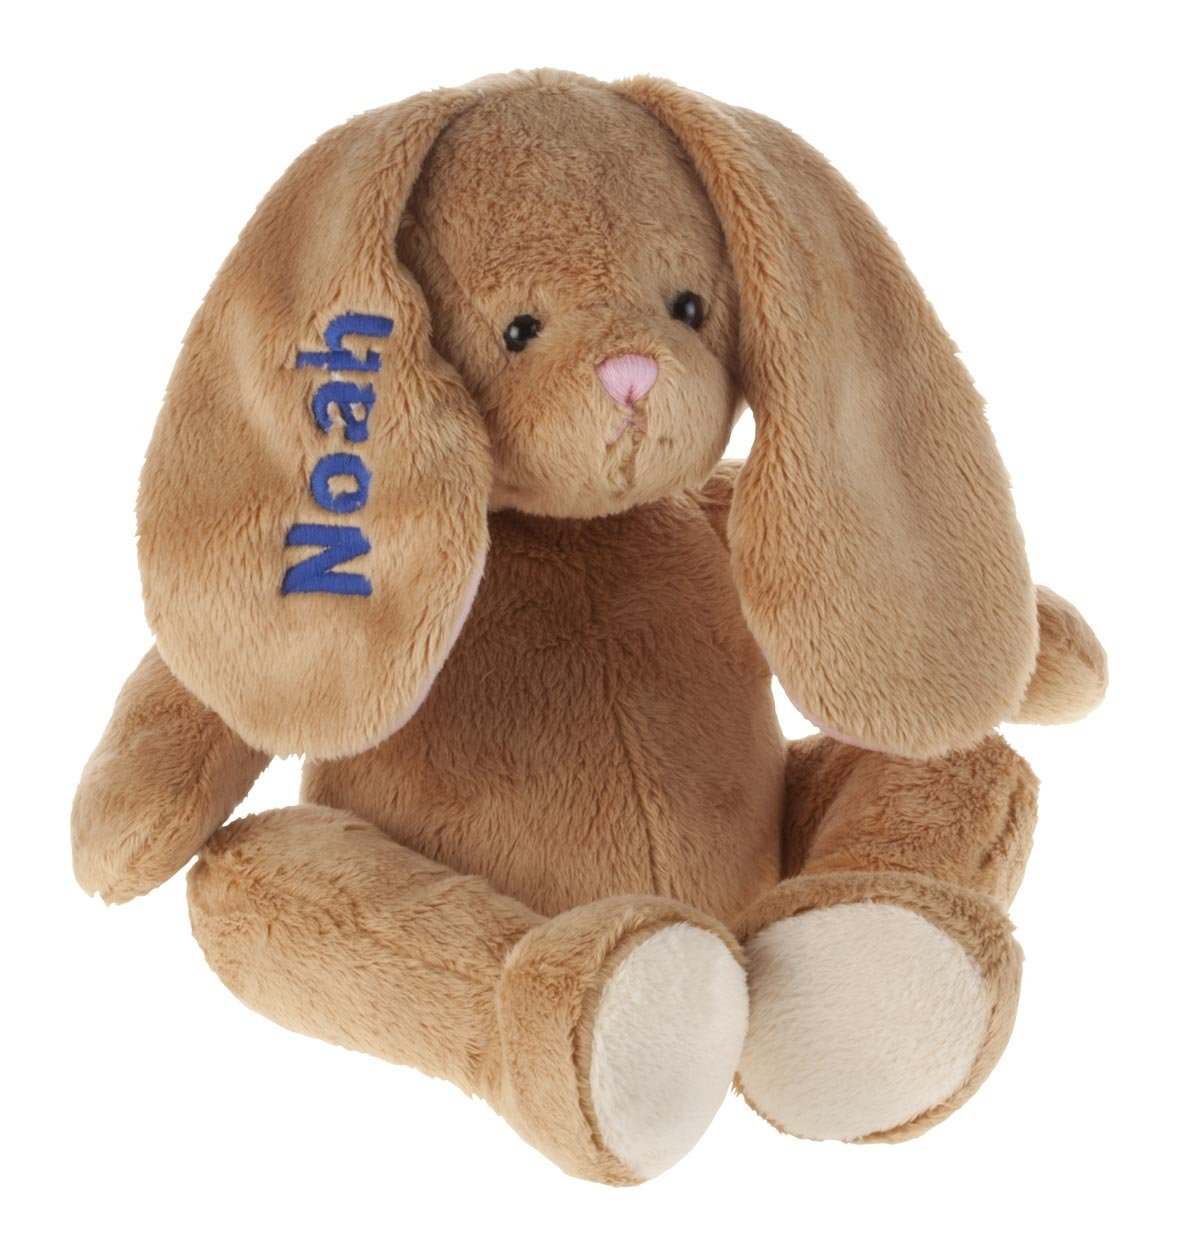 Miles Kimball Personalized Brown Plush Bunny -Customized Stuffed Animal Children Easter Gift - Embroidered Floppy Ear Bunny with Child Name in Blue Font by Miles Kimball